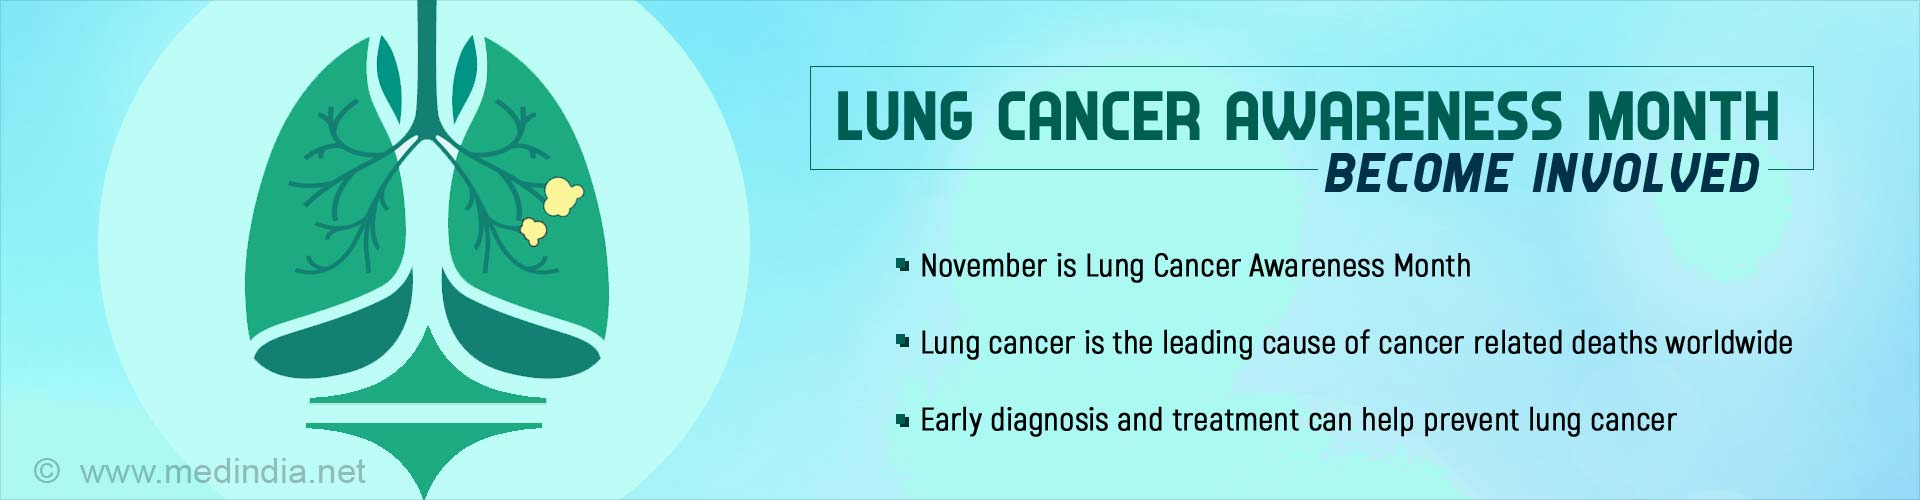 Lung Cancer Awareness Month - Improving Lung Cancer Survival